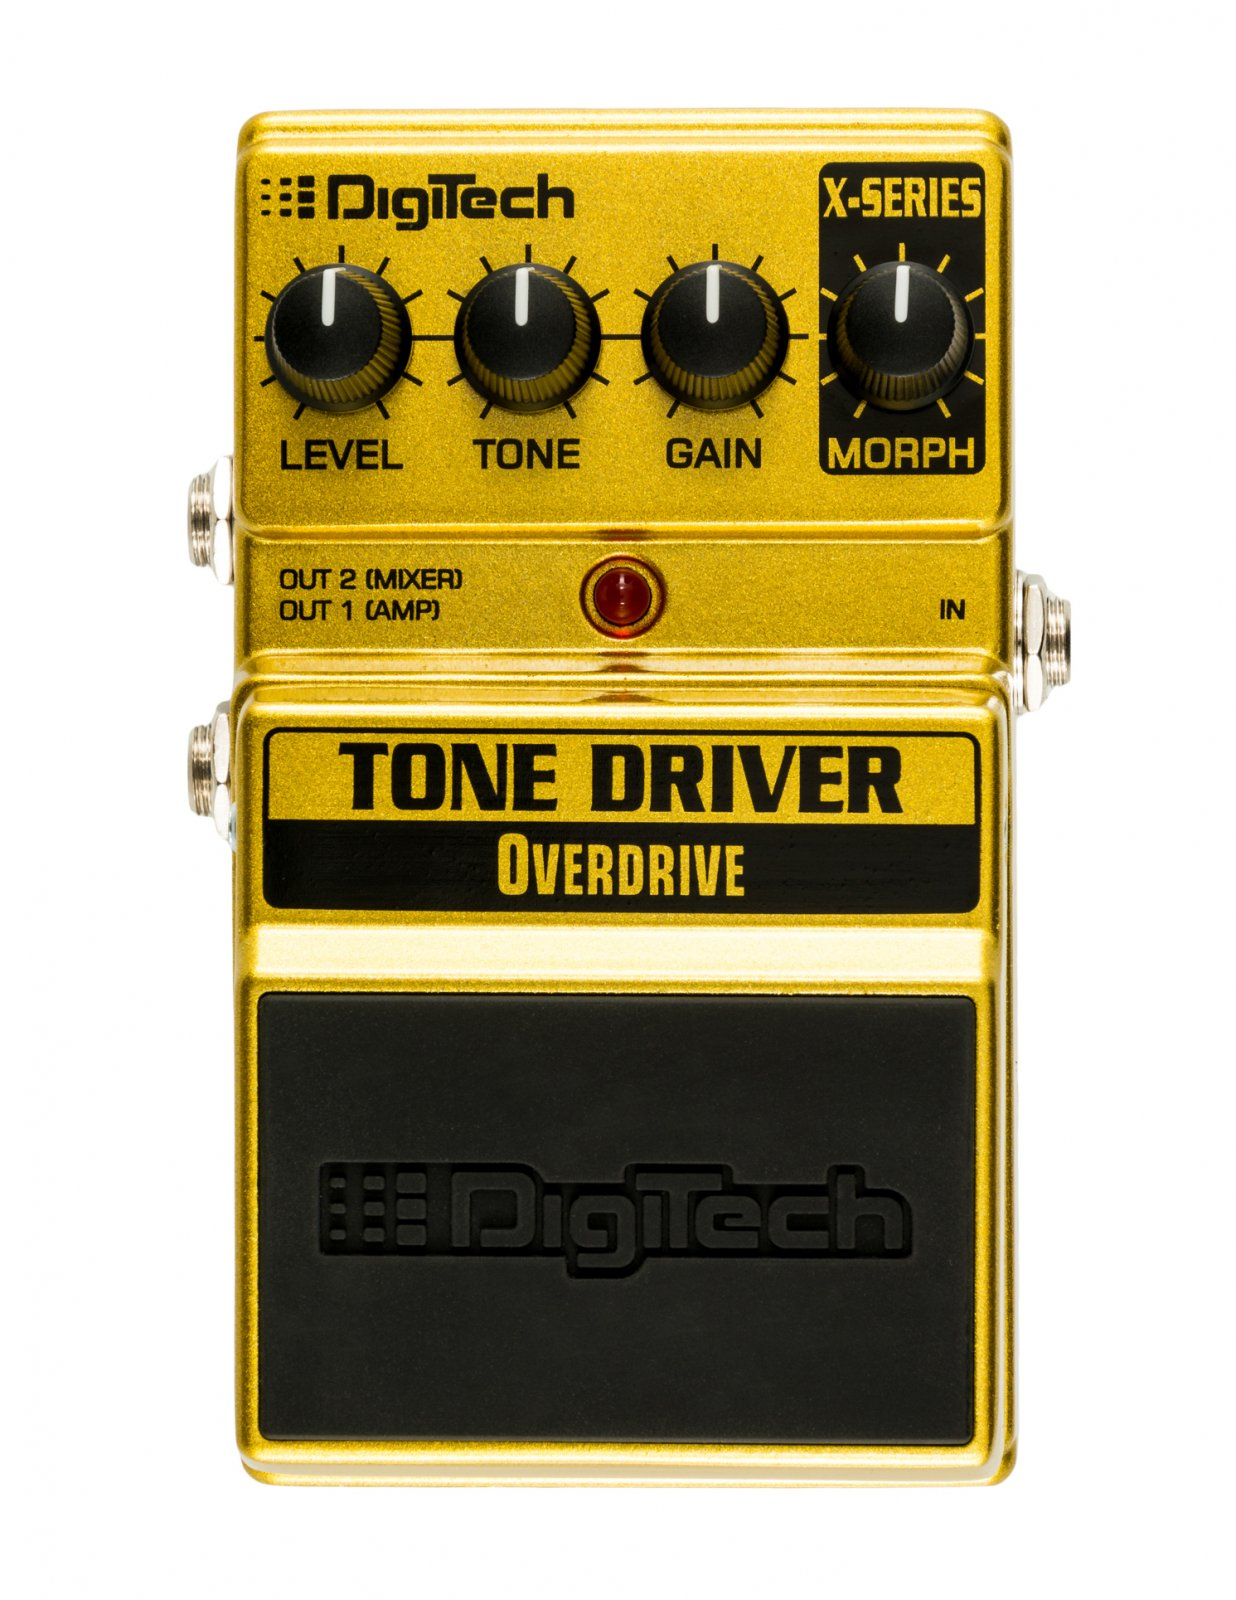 DIGITECH PEDAL X SERIES TONEDRIVER OVERDRIVE/DISTORTION